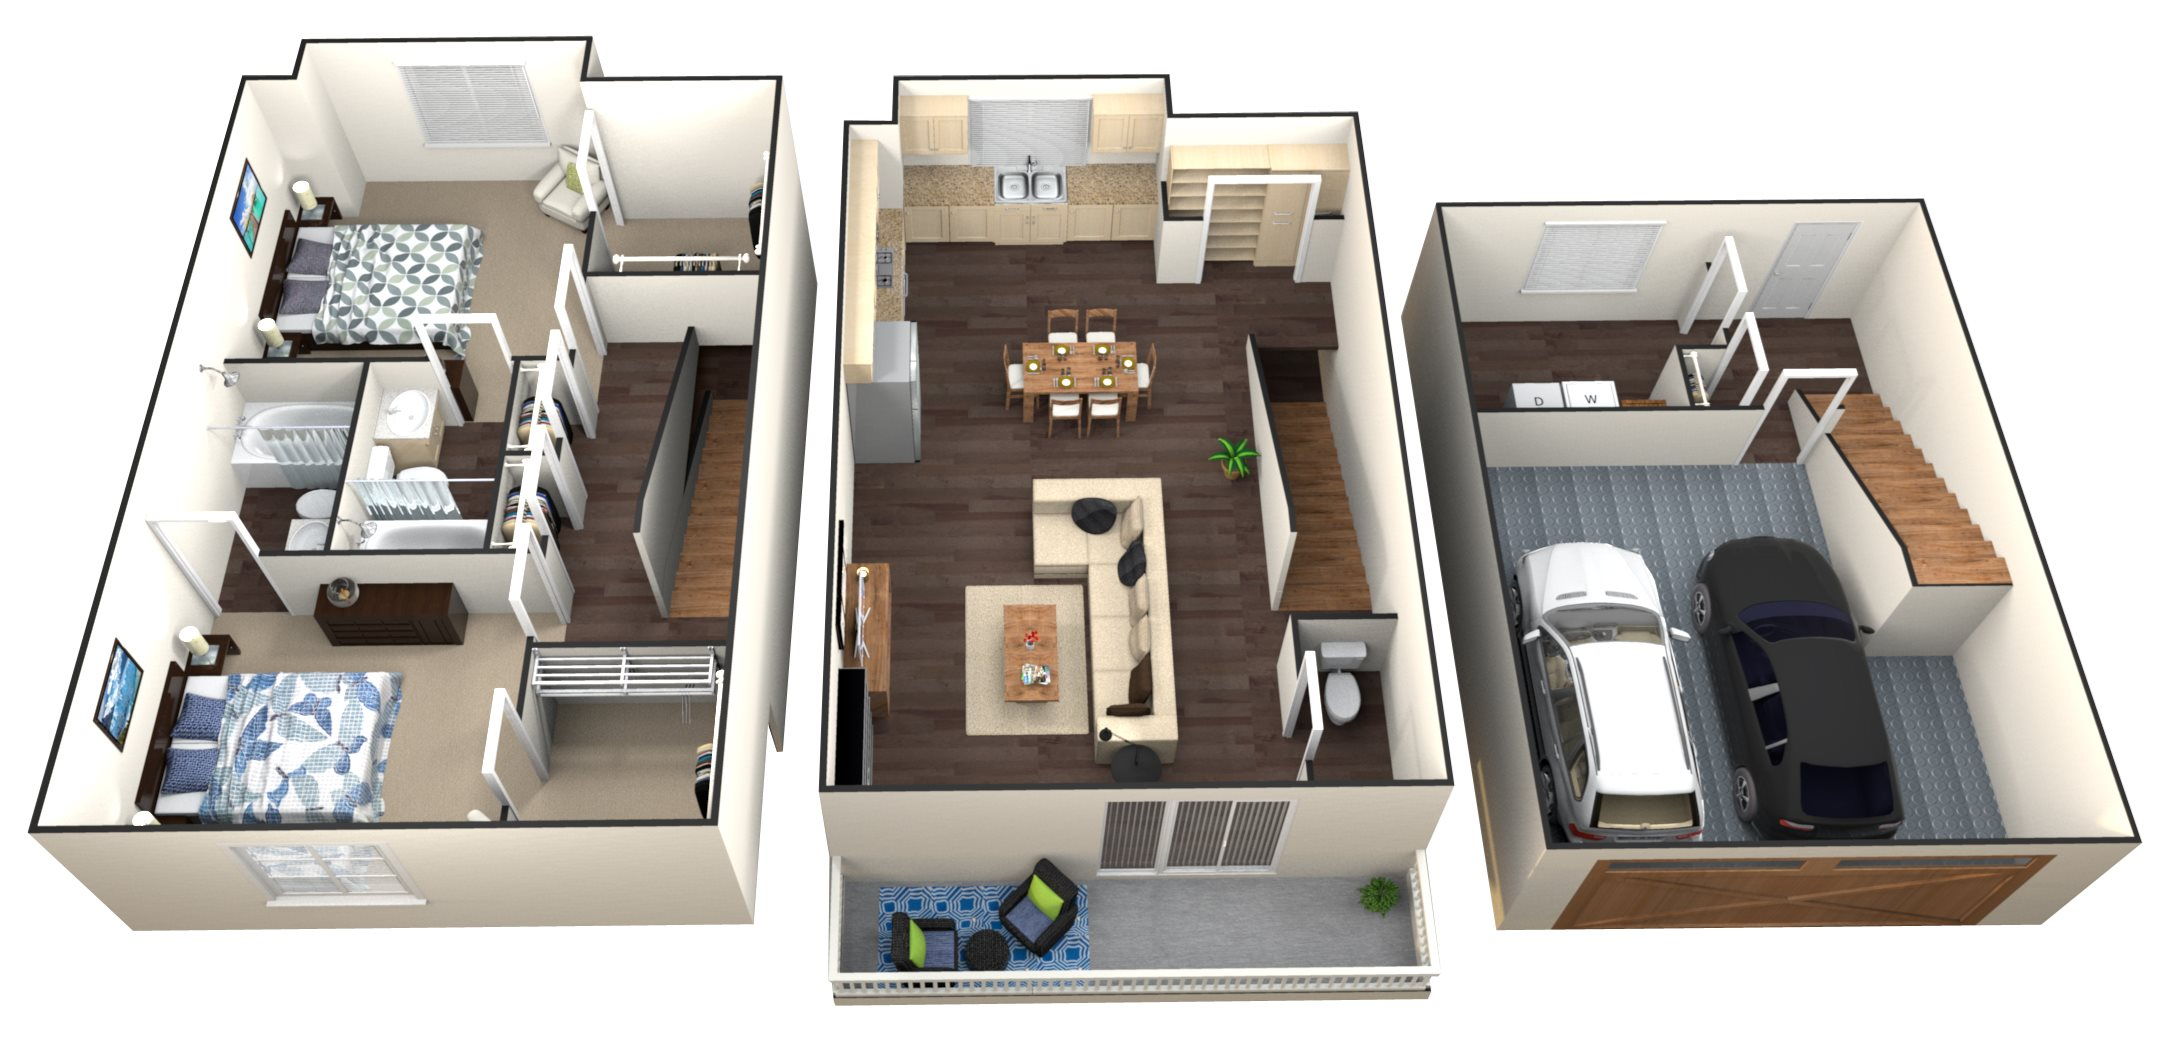 Aventura At Forest Park St Louis MO Bedroom Apartments - 2 bedroom apartment layout design